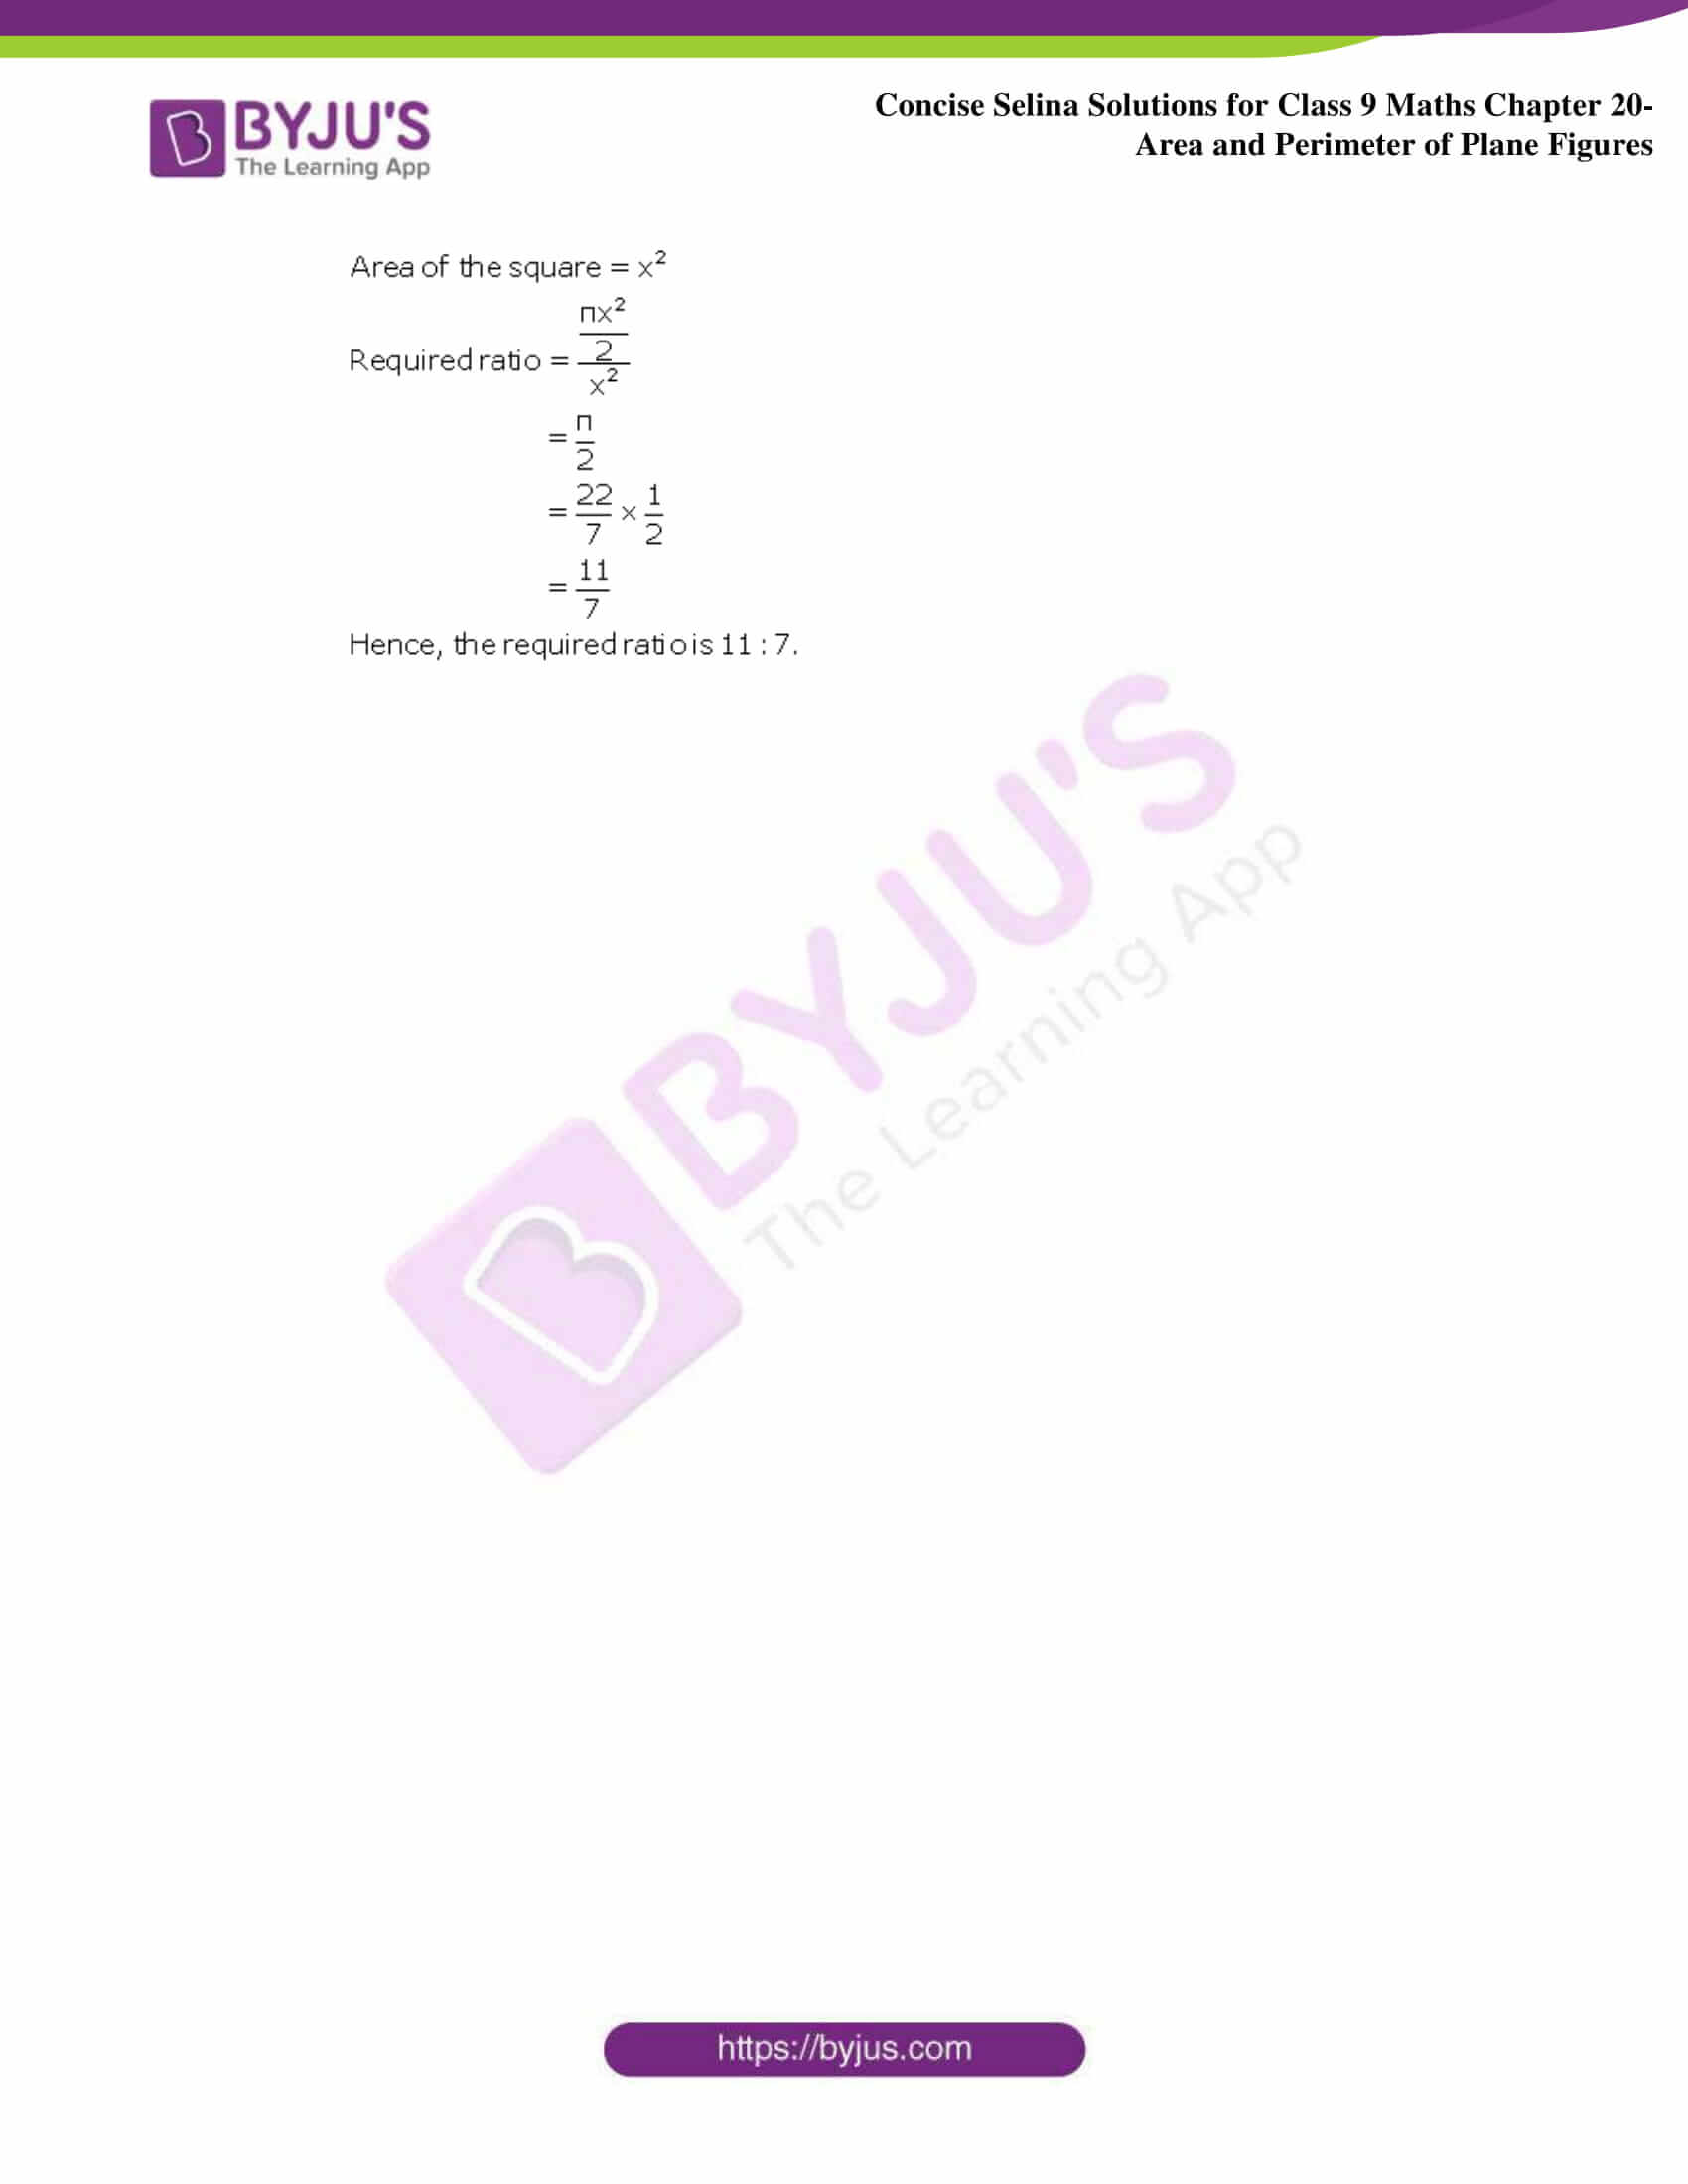 Concise Selina Solutions Class 9 Maths Chapter 20 Area and Perimeter of Plane part 51